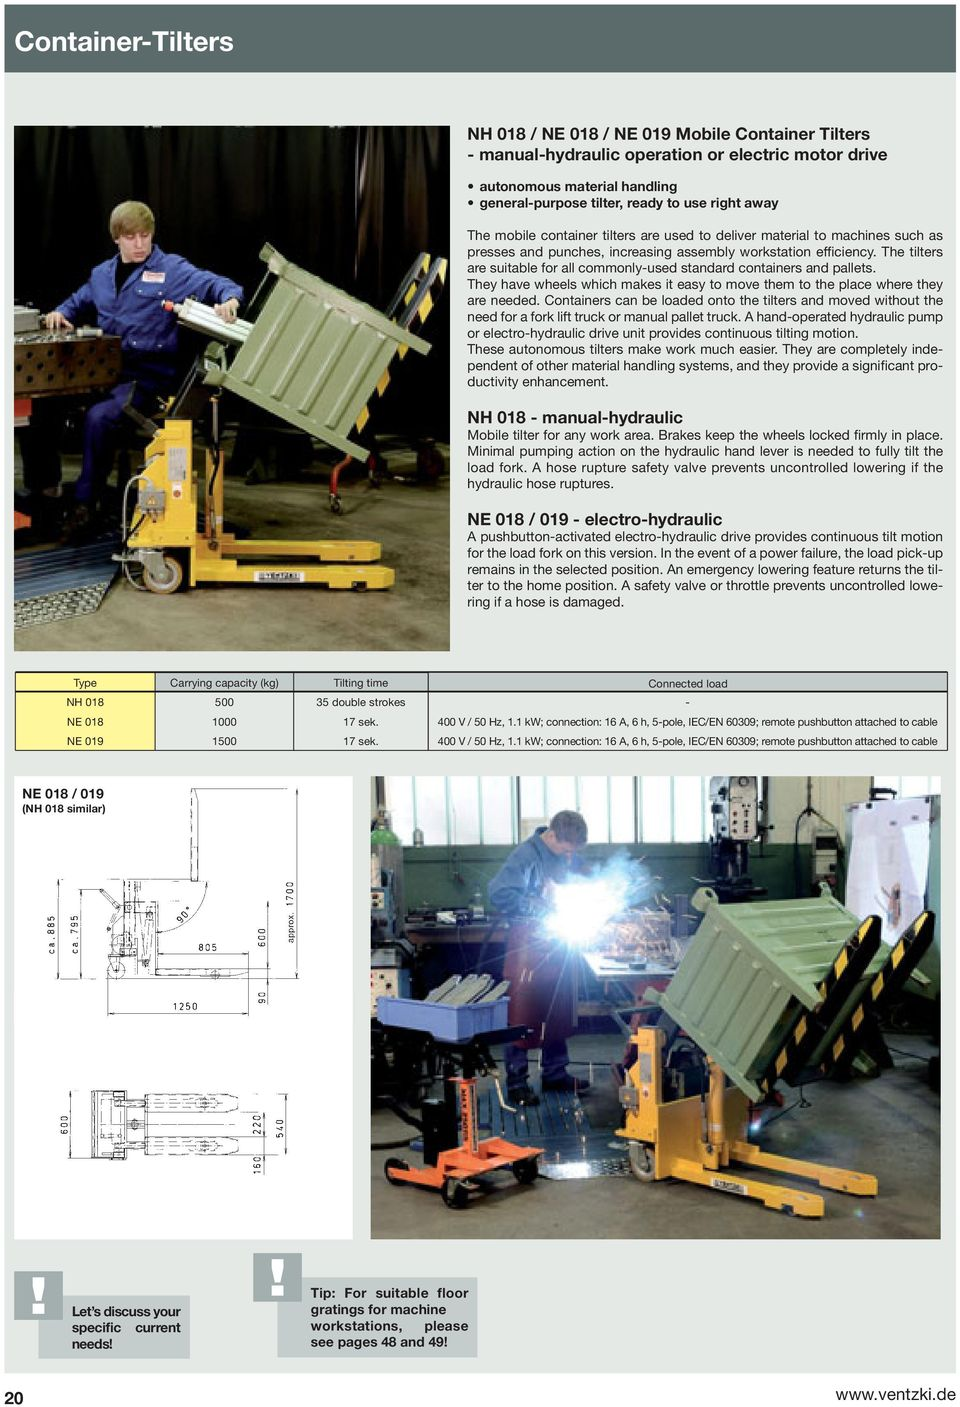 Handling Systems Your Partner For Efficiency And Ergonomics Pdf Spannfixcircuitboardholder The Tilters Are Suitable All Commonly Used Standard Containers Pallets They Have